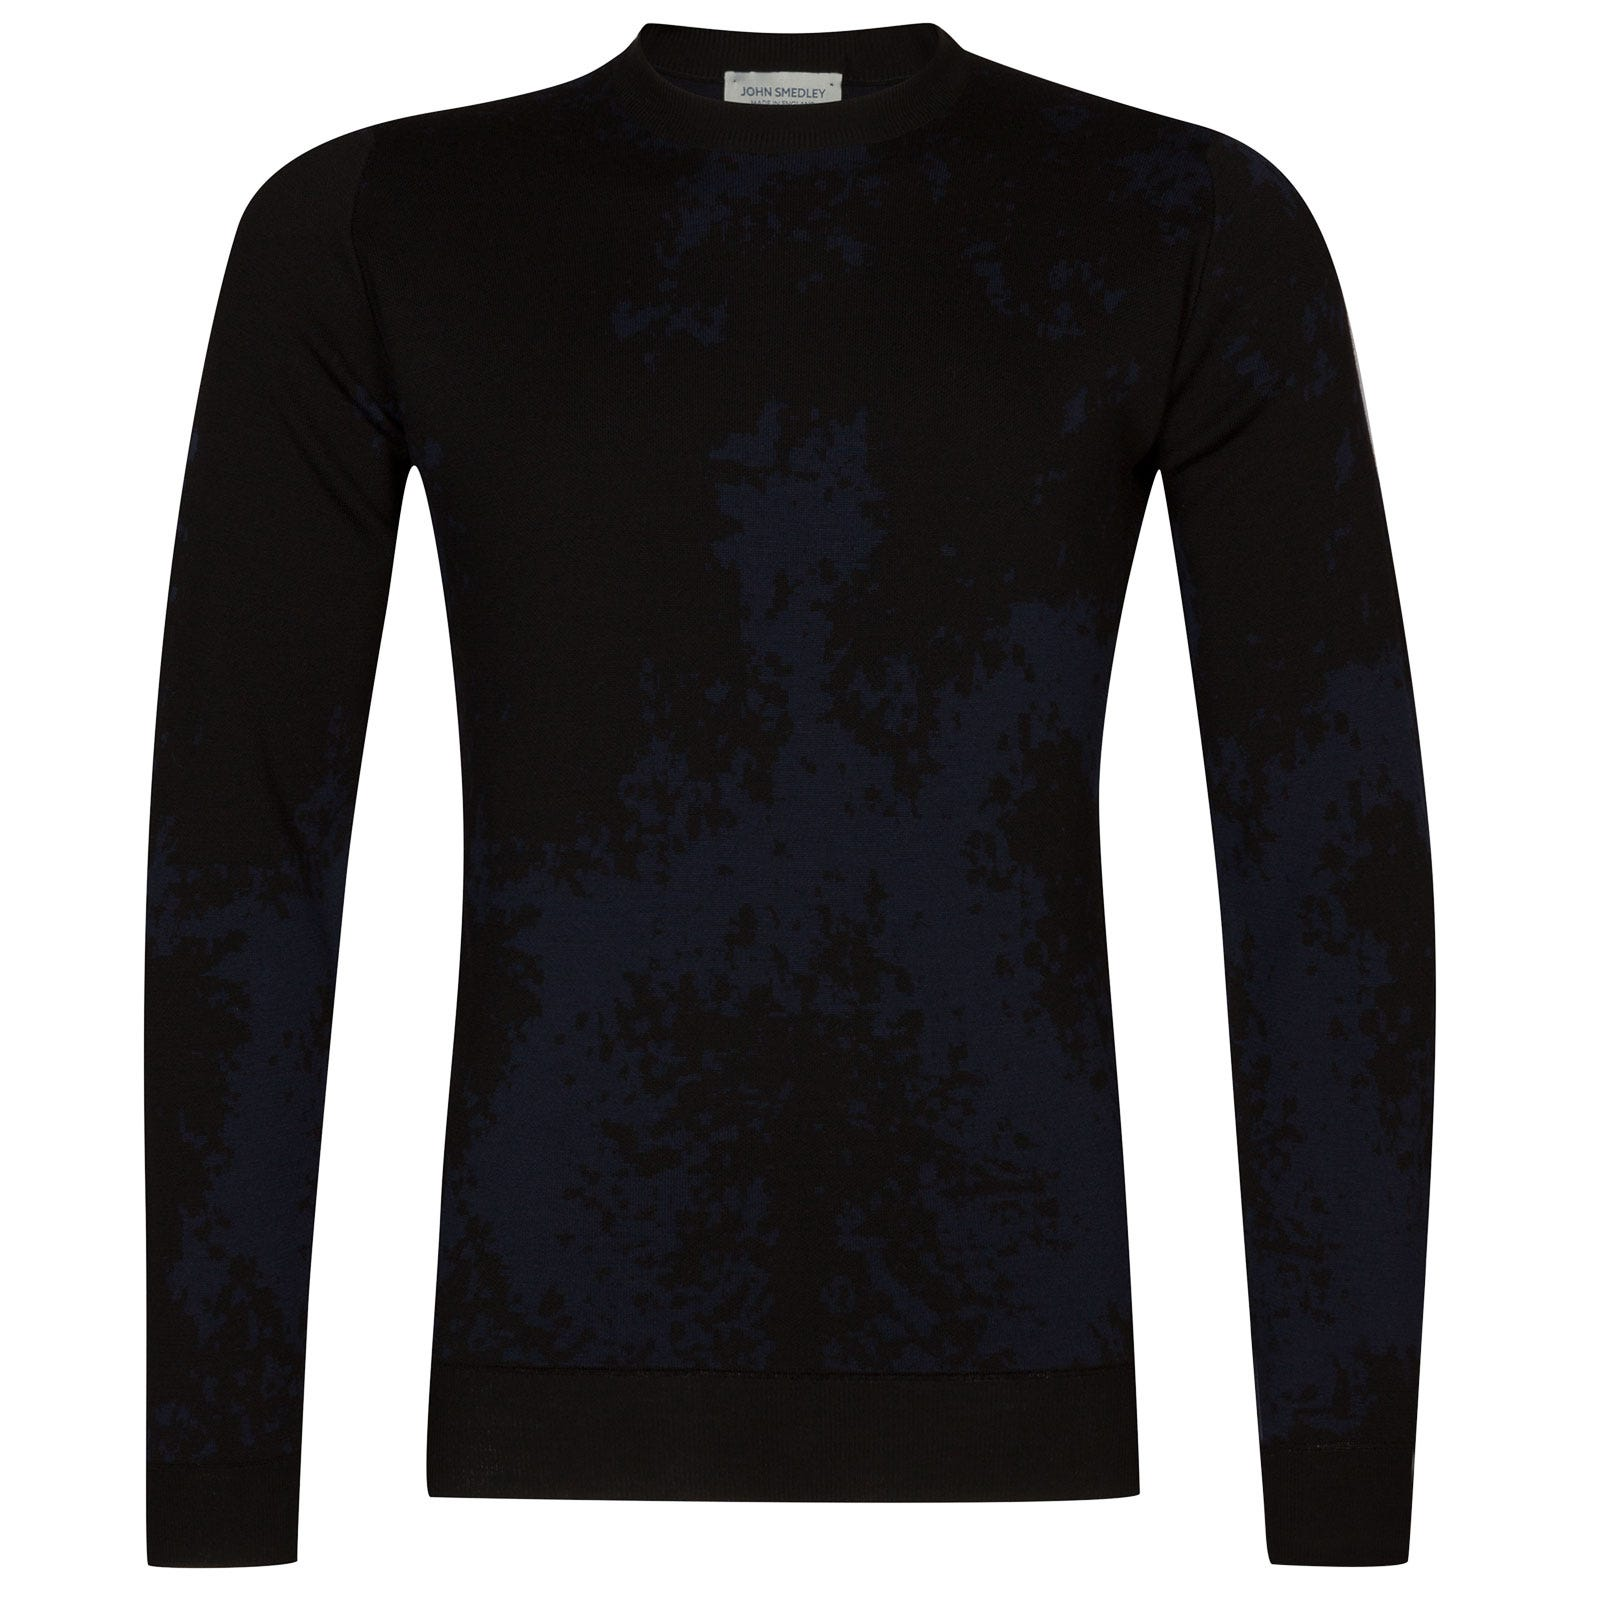 John Smedley bowland Merino Wool Pullover in Black/Midnight-XXL